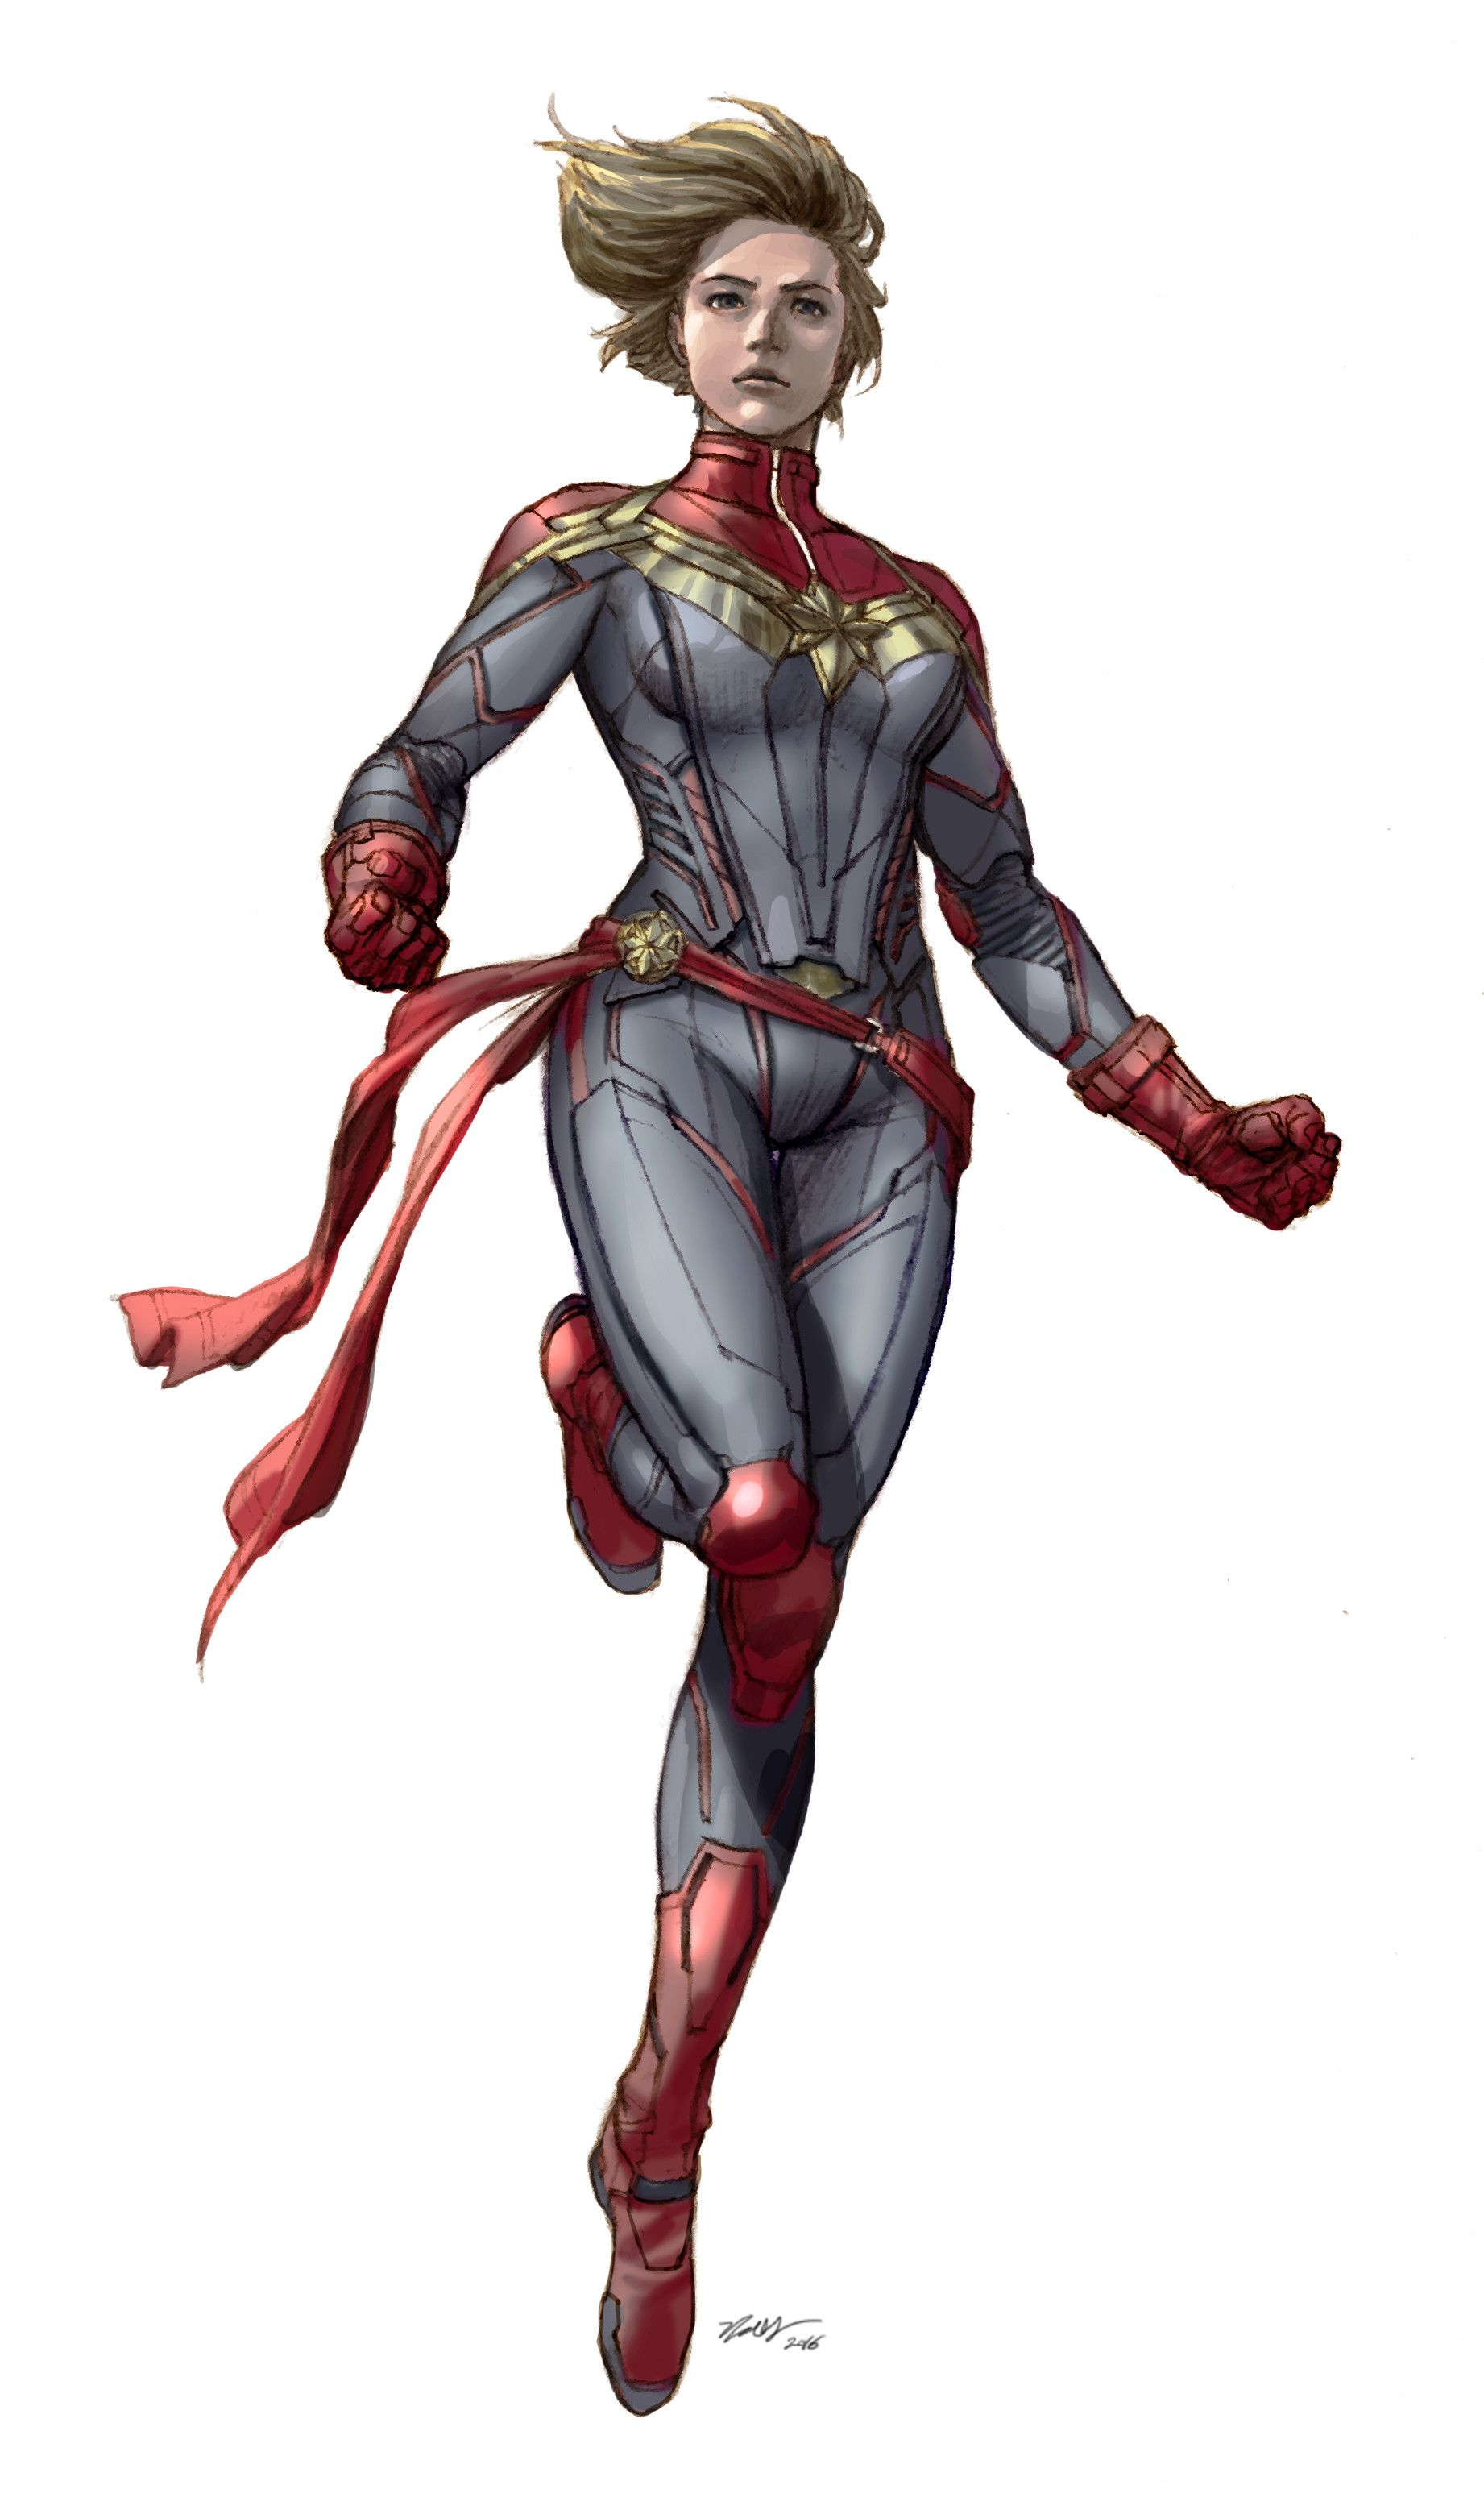 Captain Marvel By Jong Hwan Marvel Comics Art Captain Marvel Marvel Comics Check out our captain marvel costume selection for the very best in unique or custom, handmade pieces from our costumes shops. captain marvel by jong hwan marvel